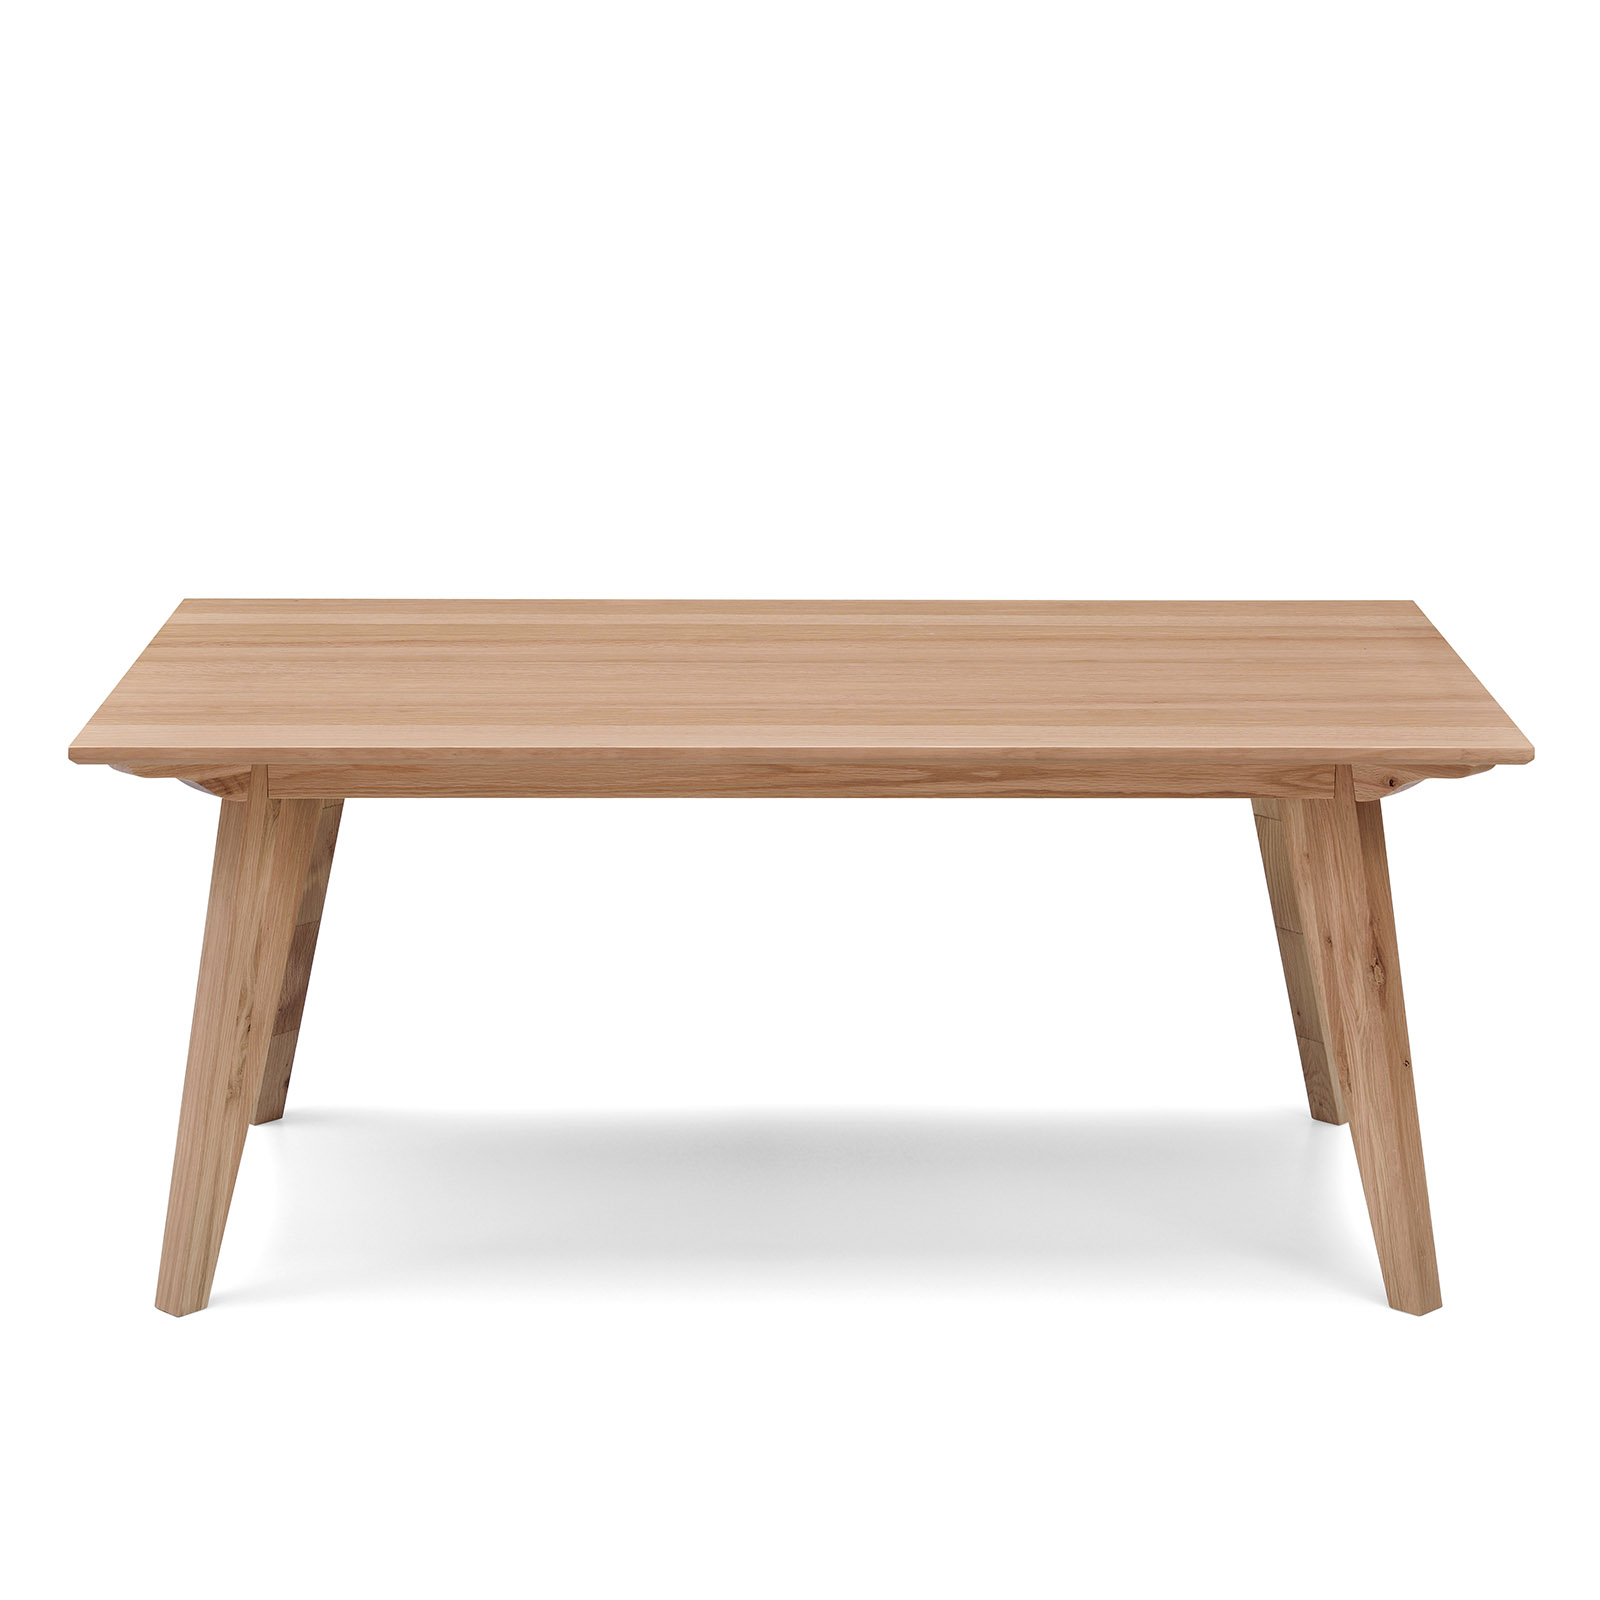 Alison White Oak Natural Veneer Dining Table Modern Design EBay